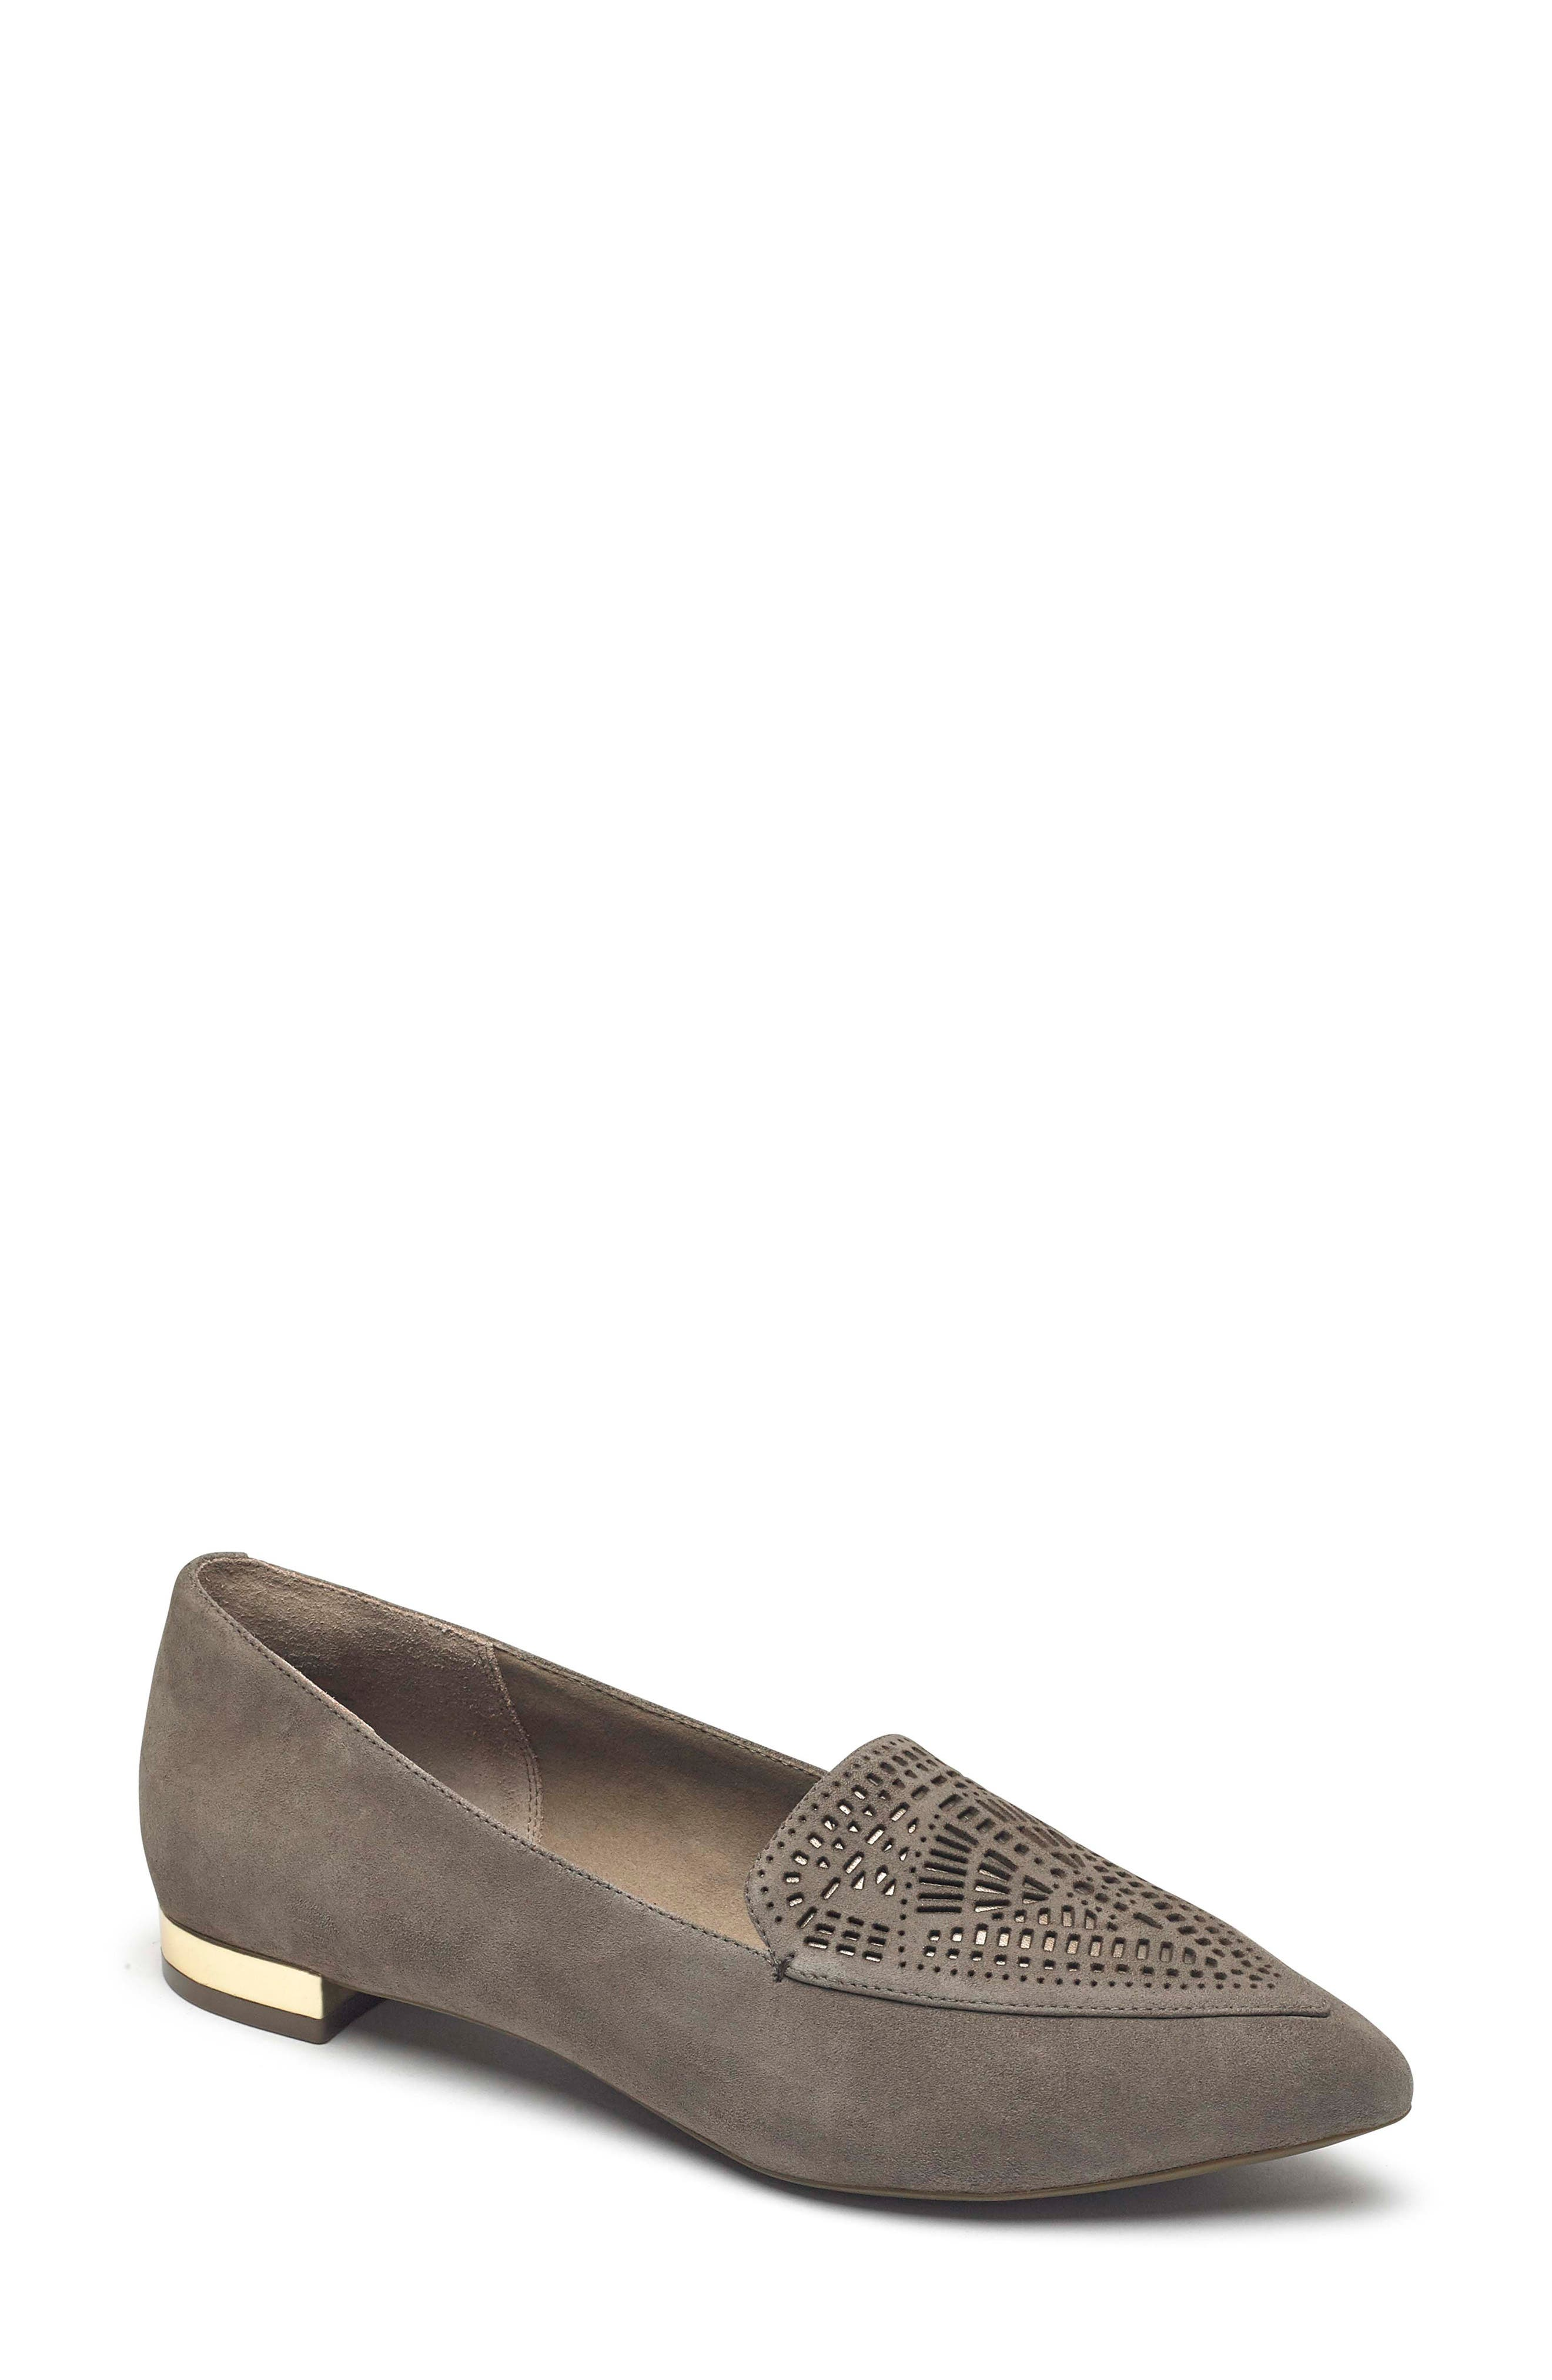 Total Motion Adelyn Loafer,                             Main thumbnail 1, color,                             WARM IRON